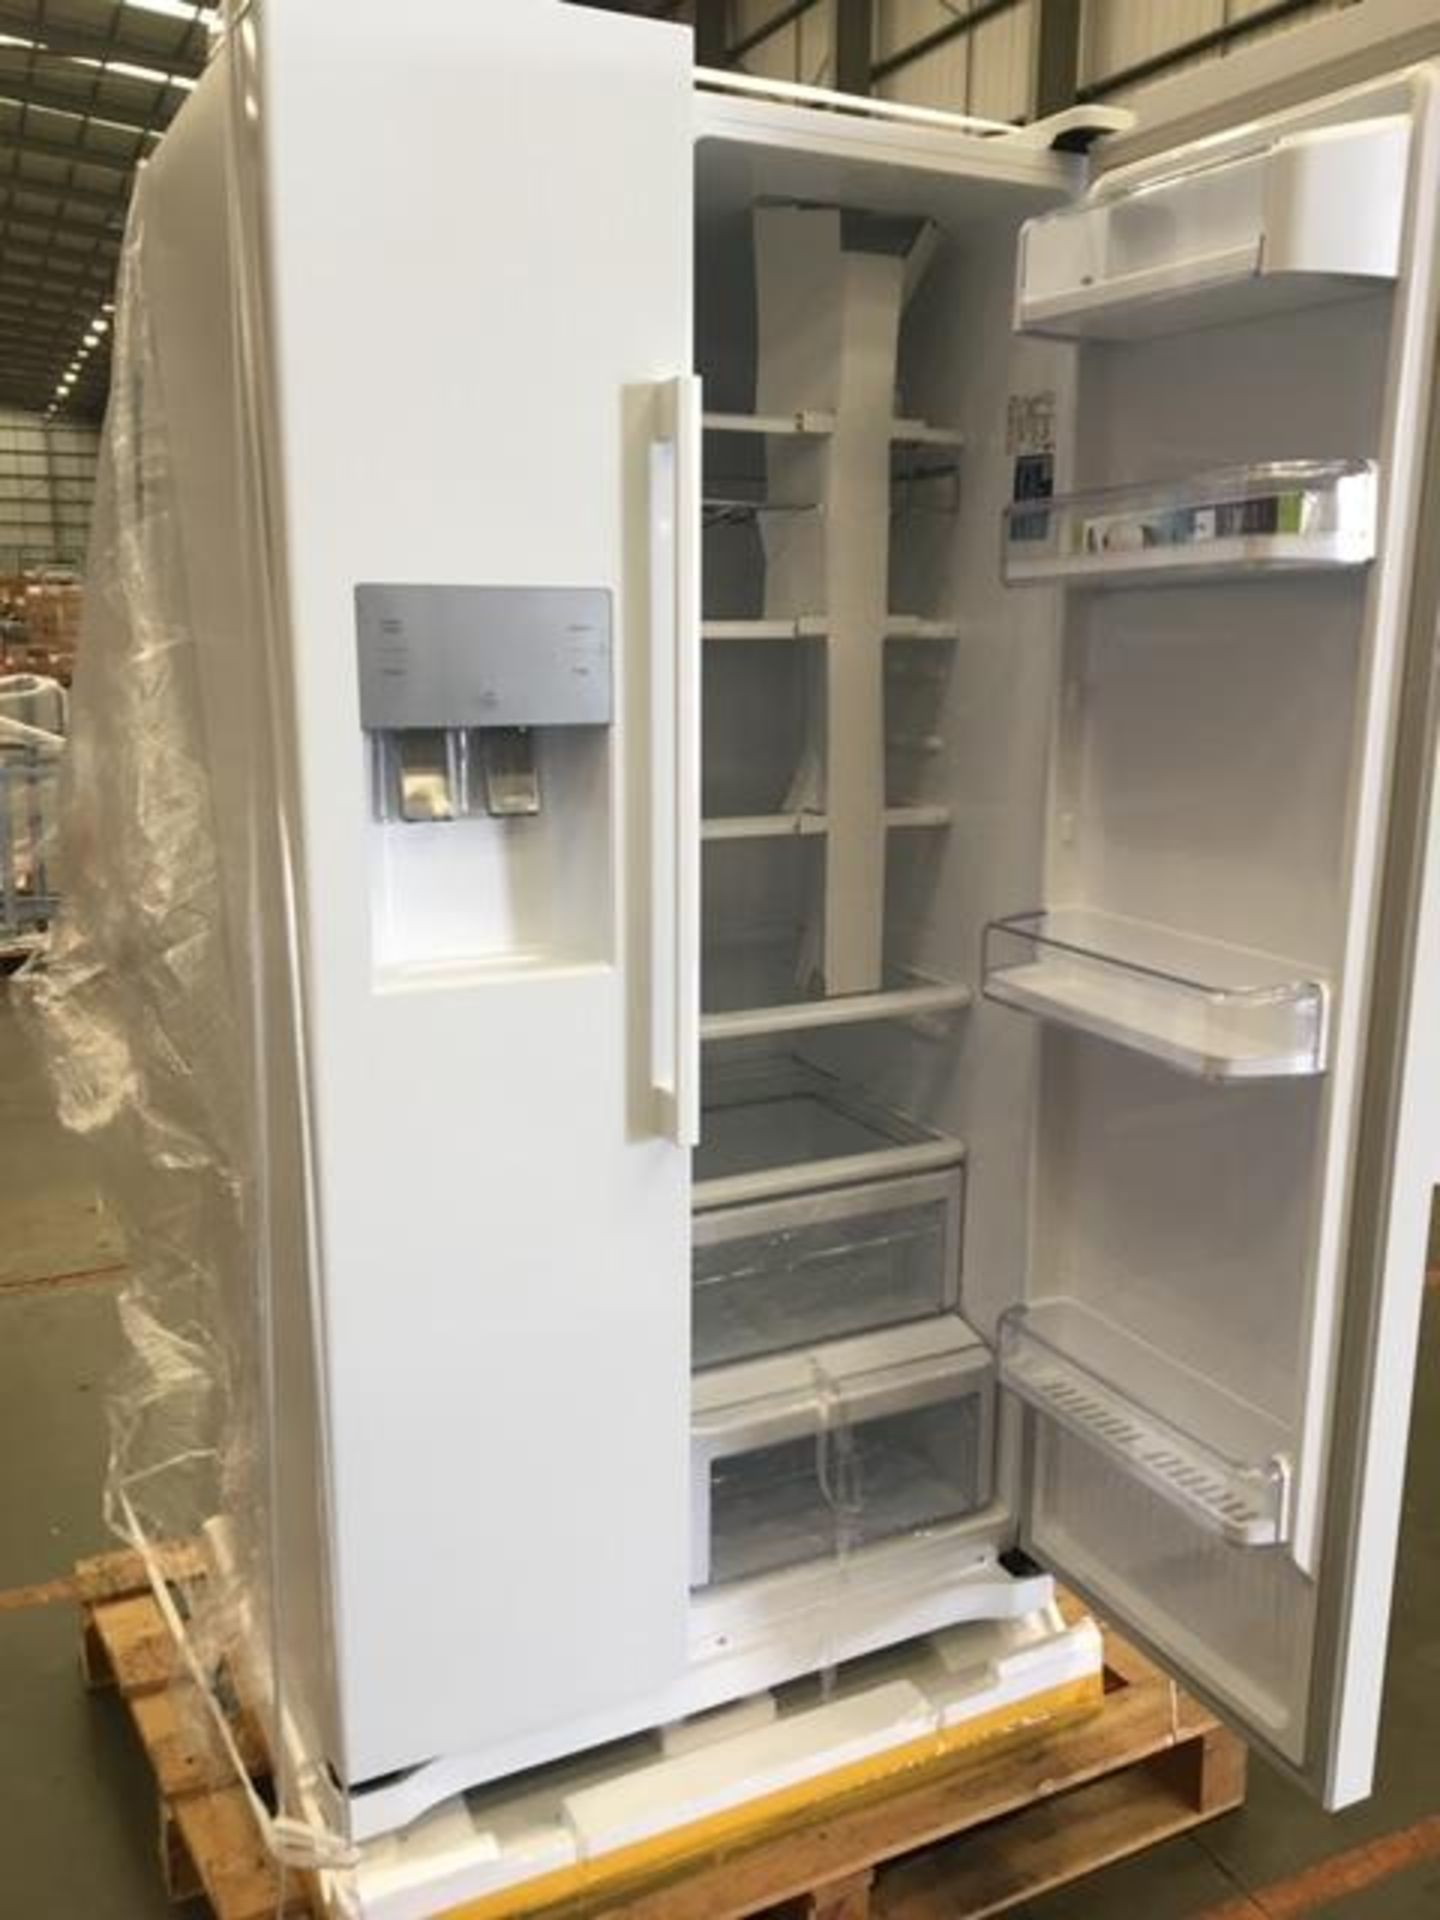 Pallet of 1 Samsung Water & Ice Fridge freezer. Latest selling price £999.99* - Image 5 of 8